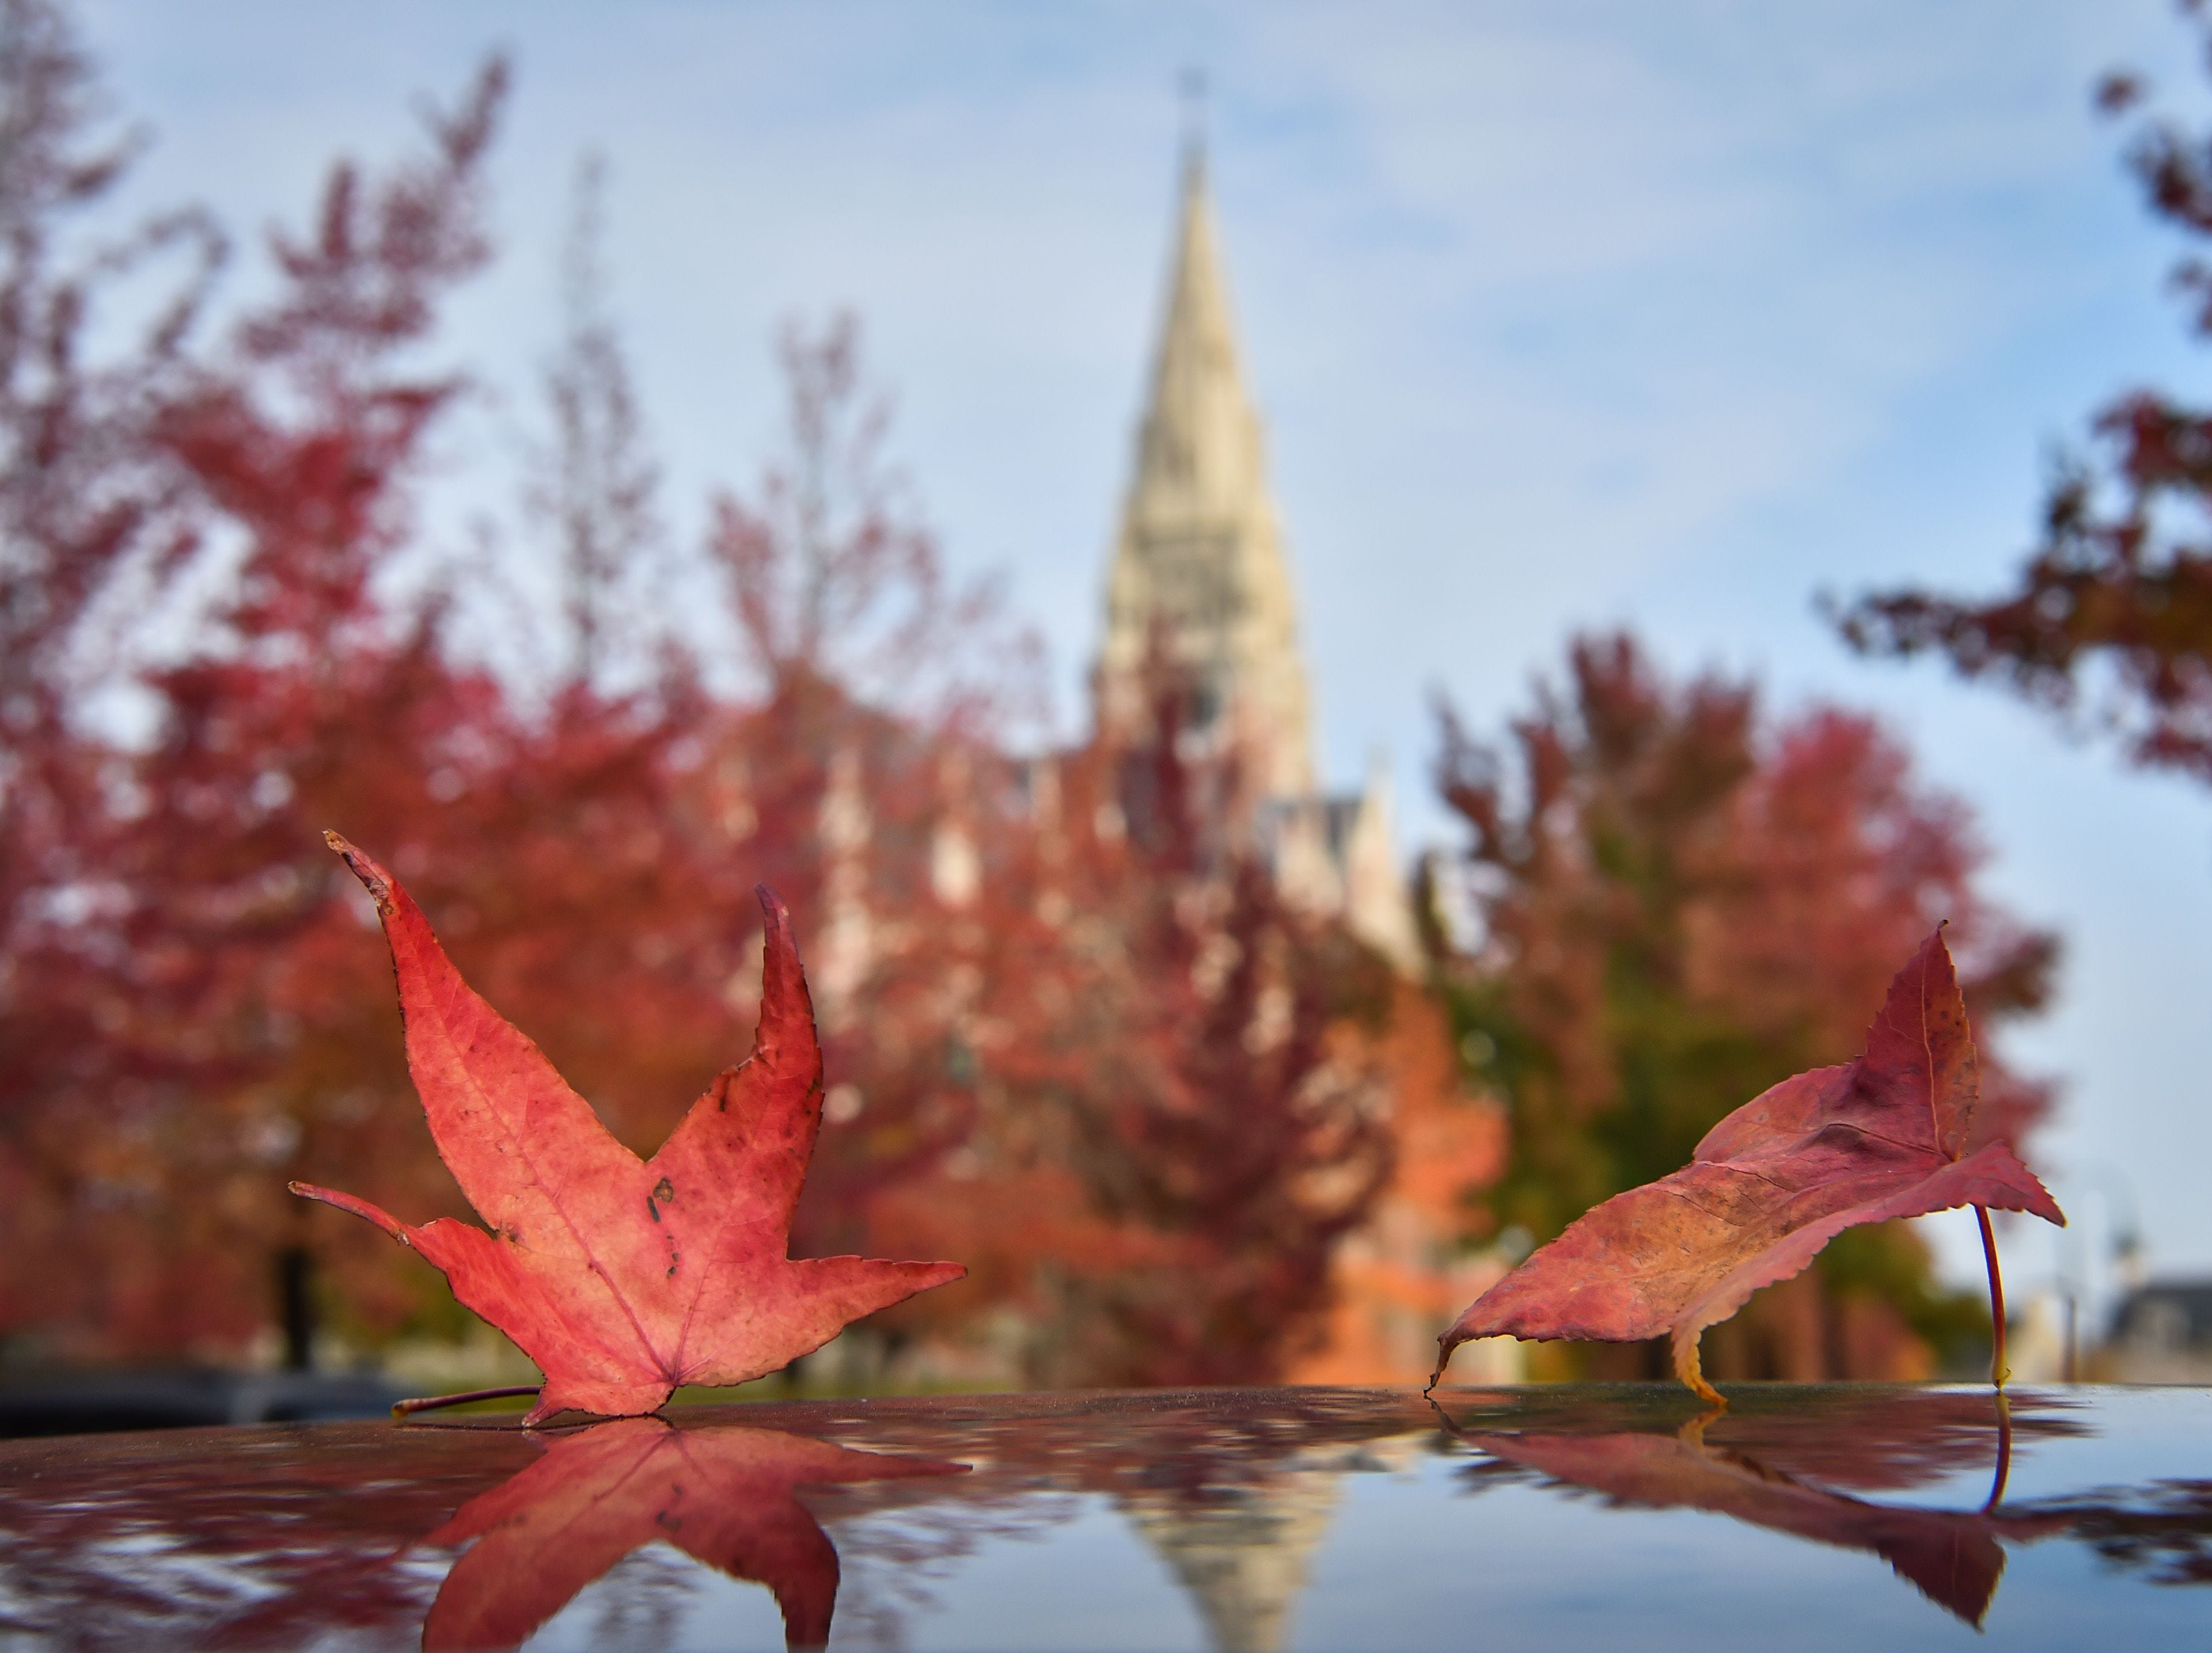 A picture taken on Oct. 18, 2018 shows autumn dead leaves falling down in front of the Sainte-Bernadette church in Orvault, France.